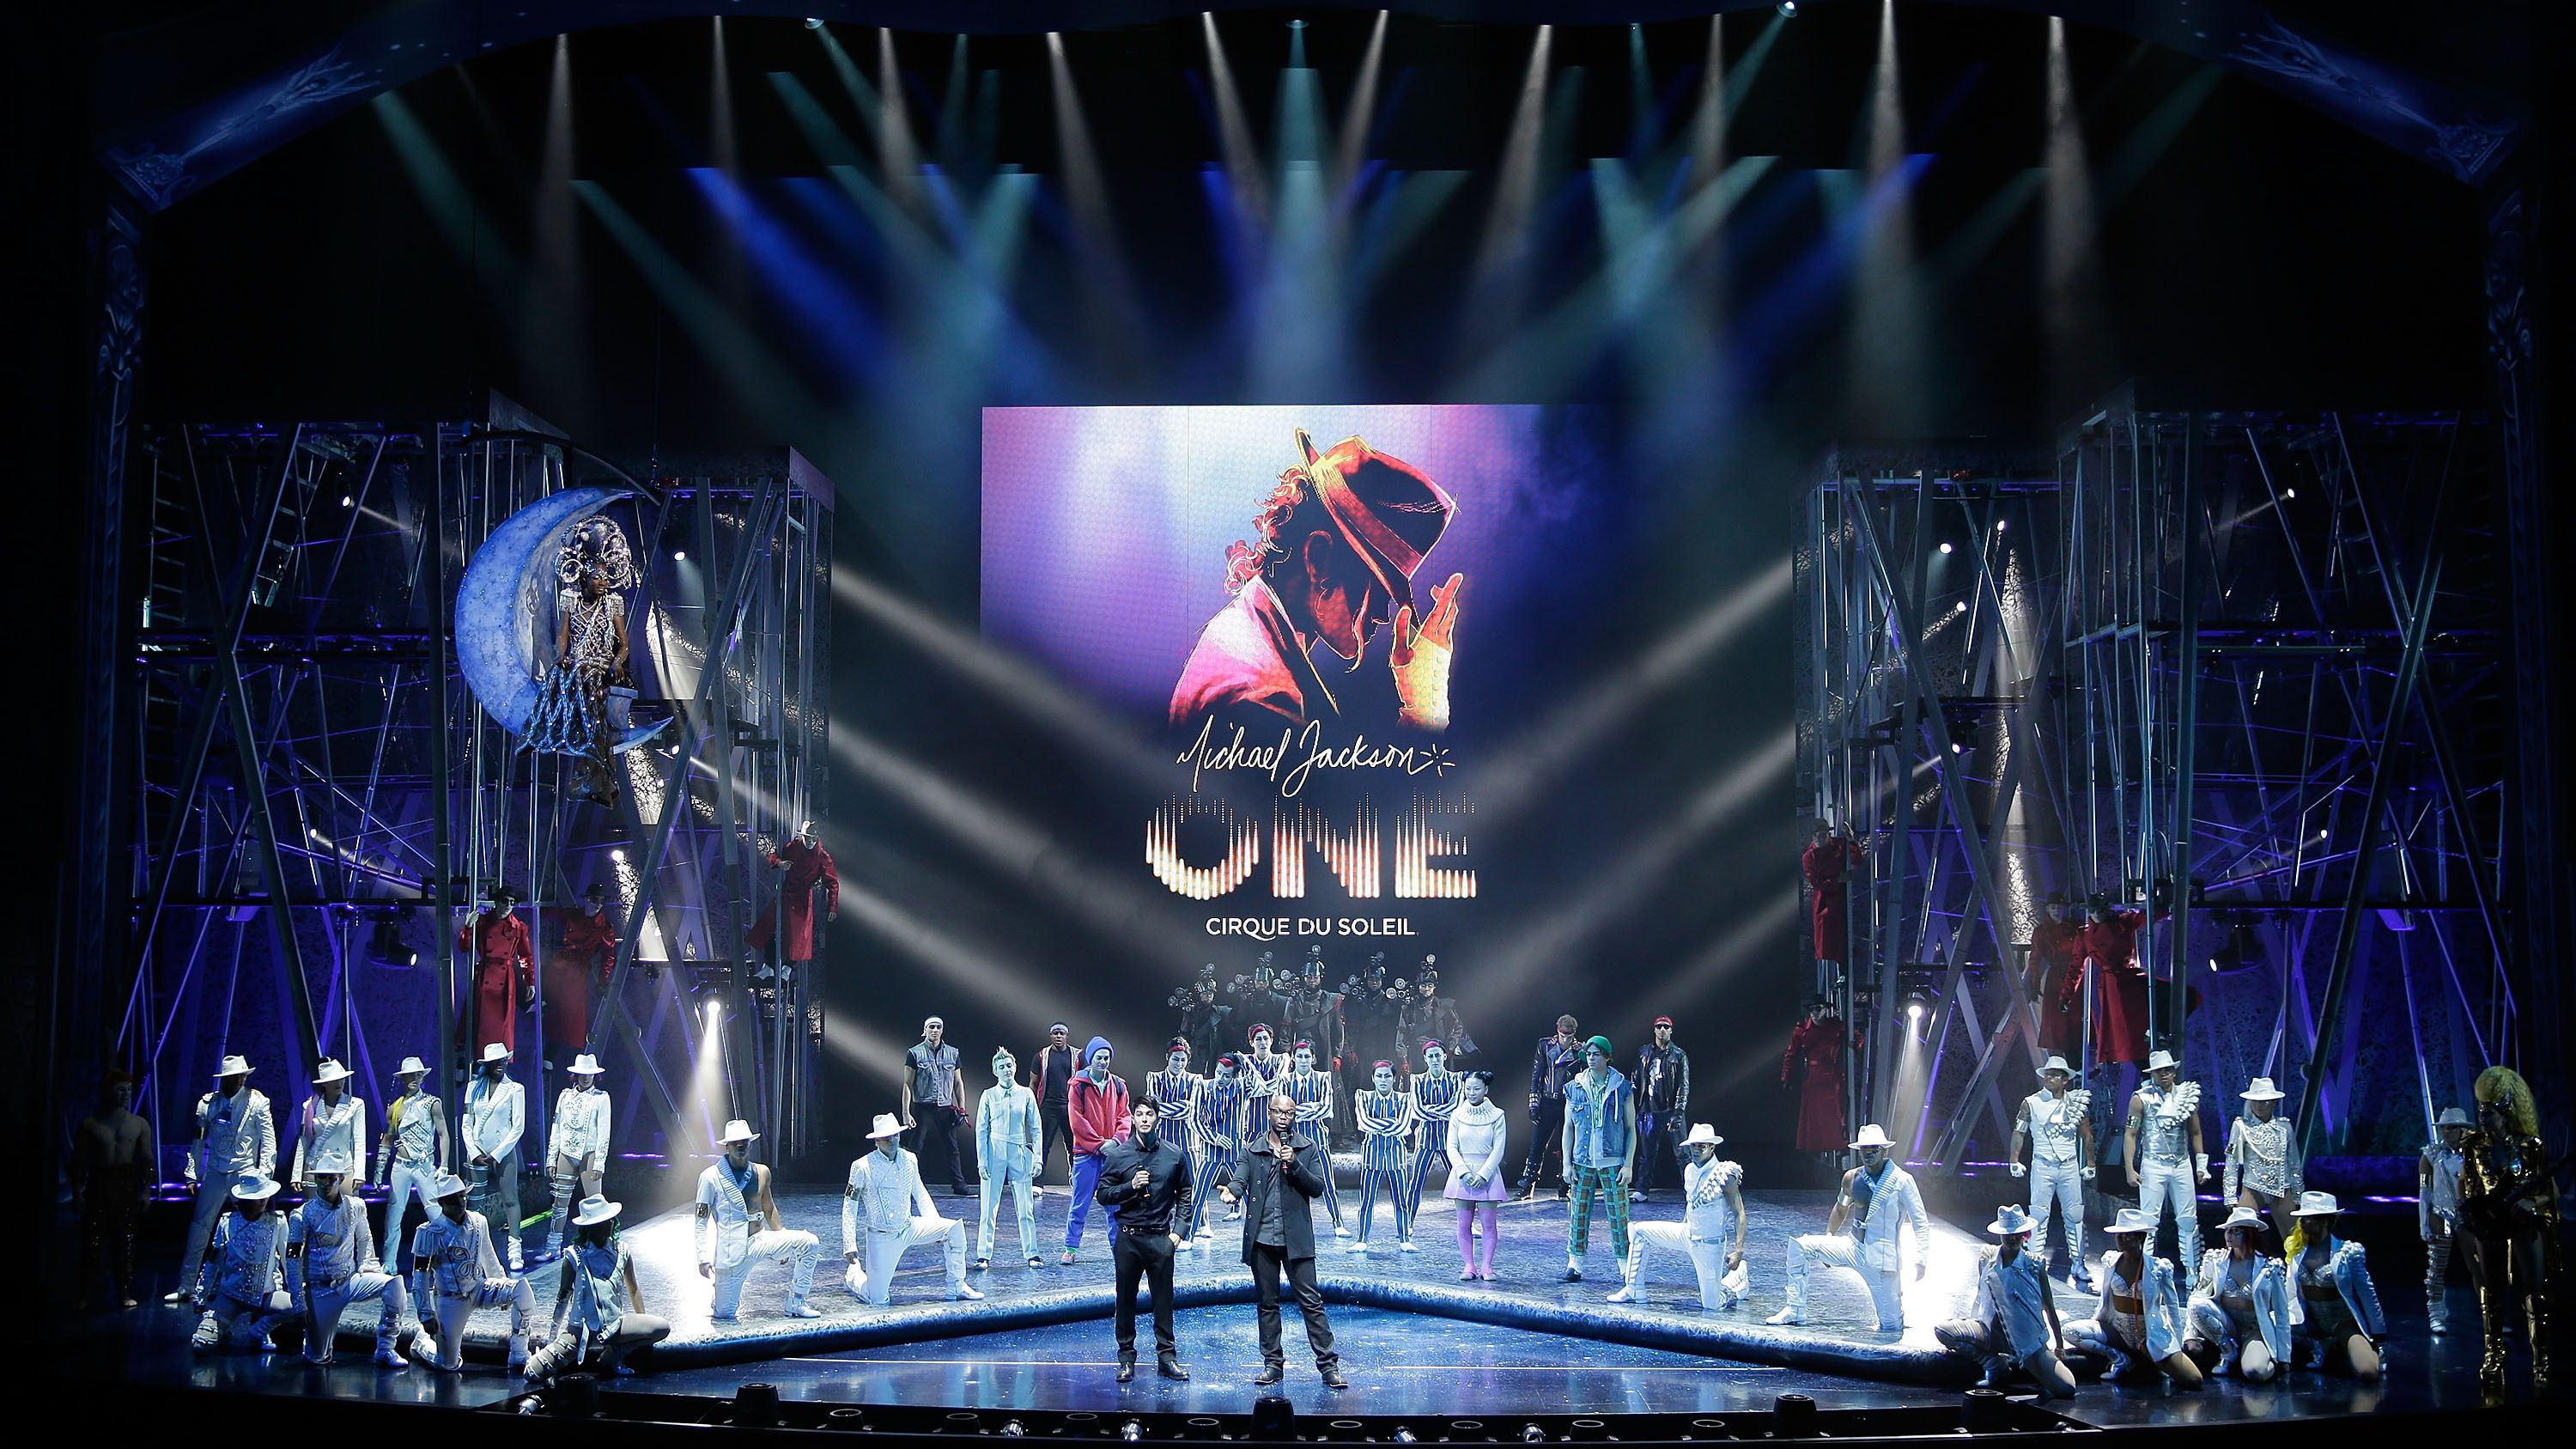 Cirque du Soleil® performs tributes to Michael Jackson in One, at Mandalay Bay